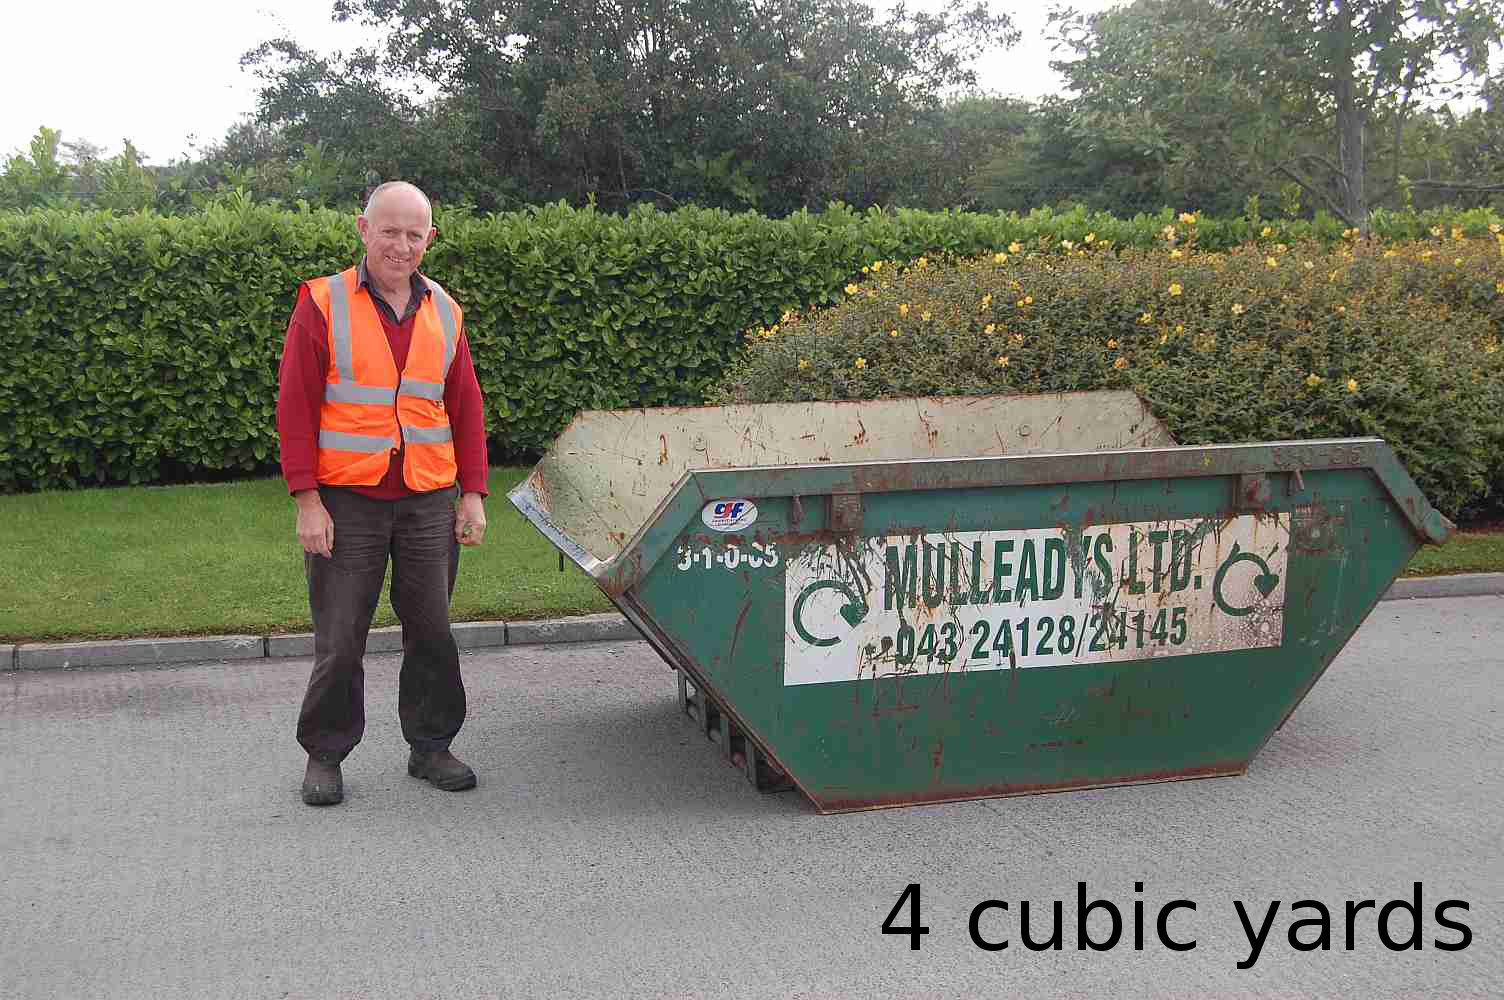 Holds approx. 40 refuse sacks. For house / garden clearance, small scale construction works etc